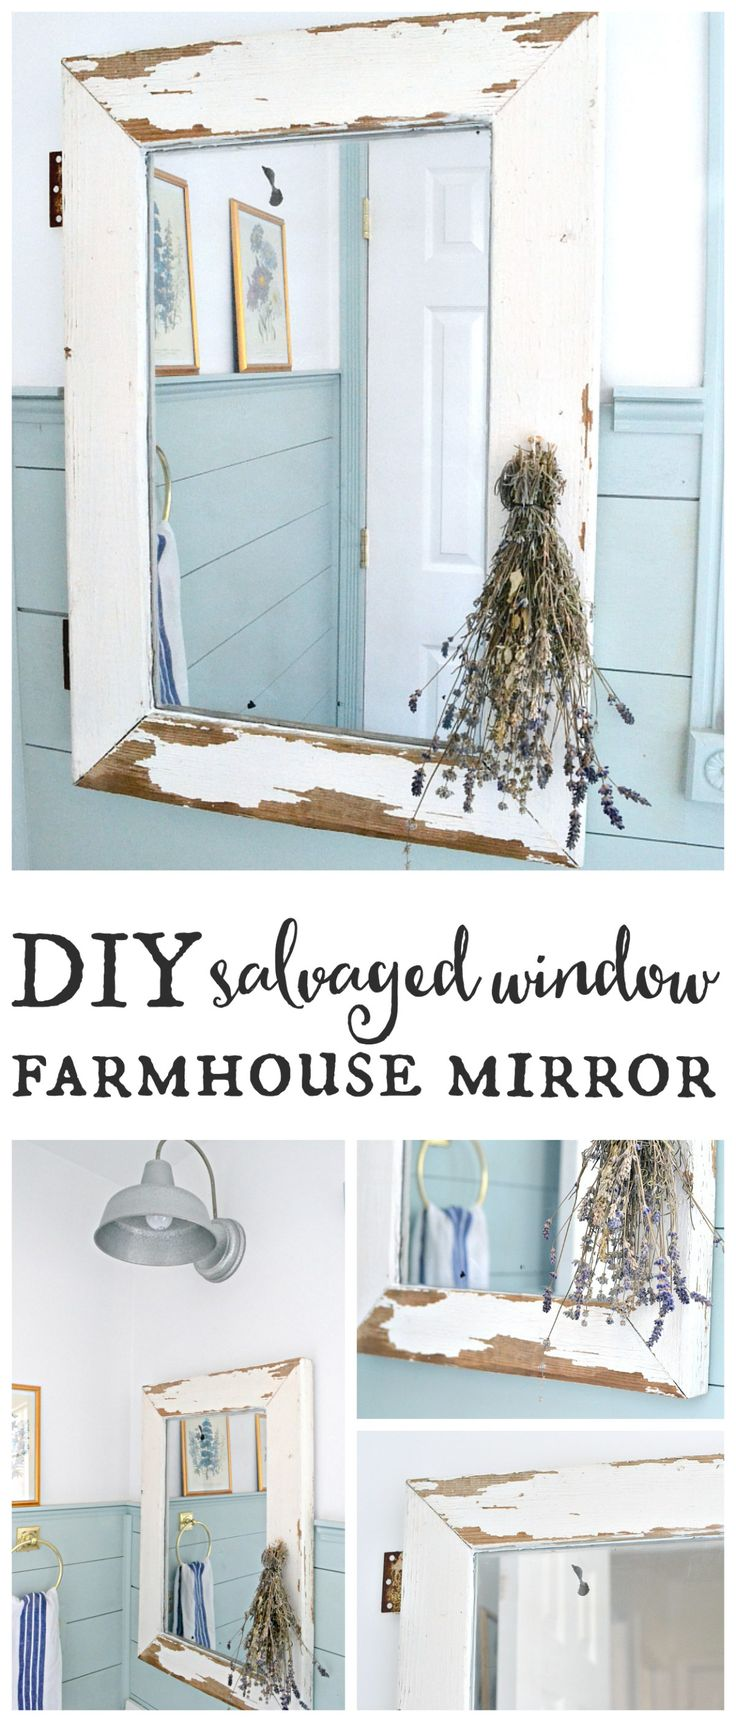 Salvaged window farmhouse mirror. Turn a salvaged window into a farmhouse…